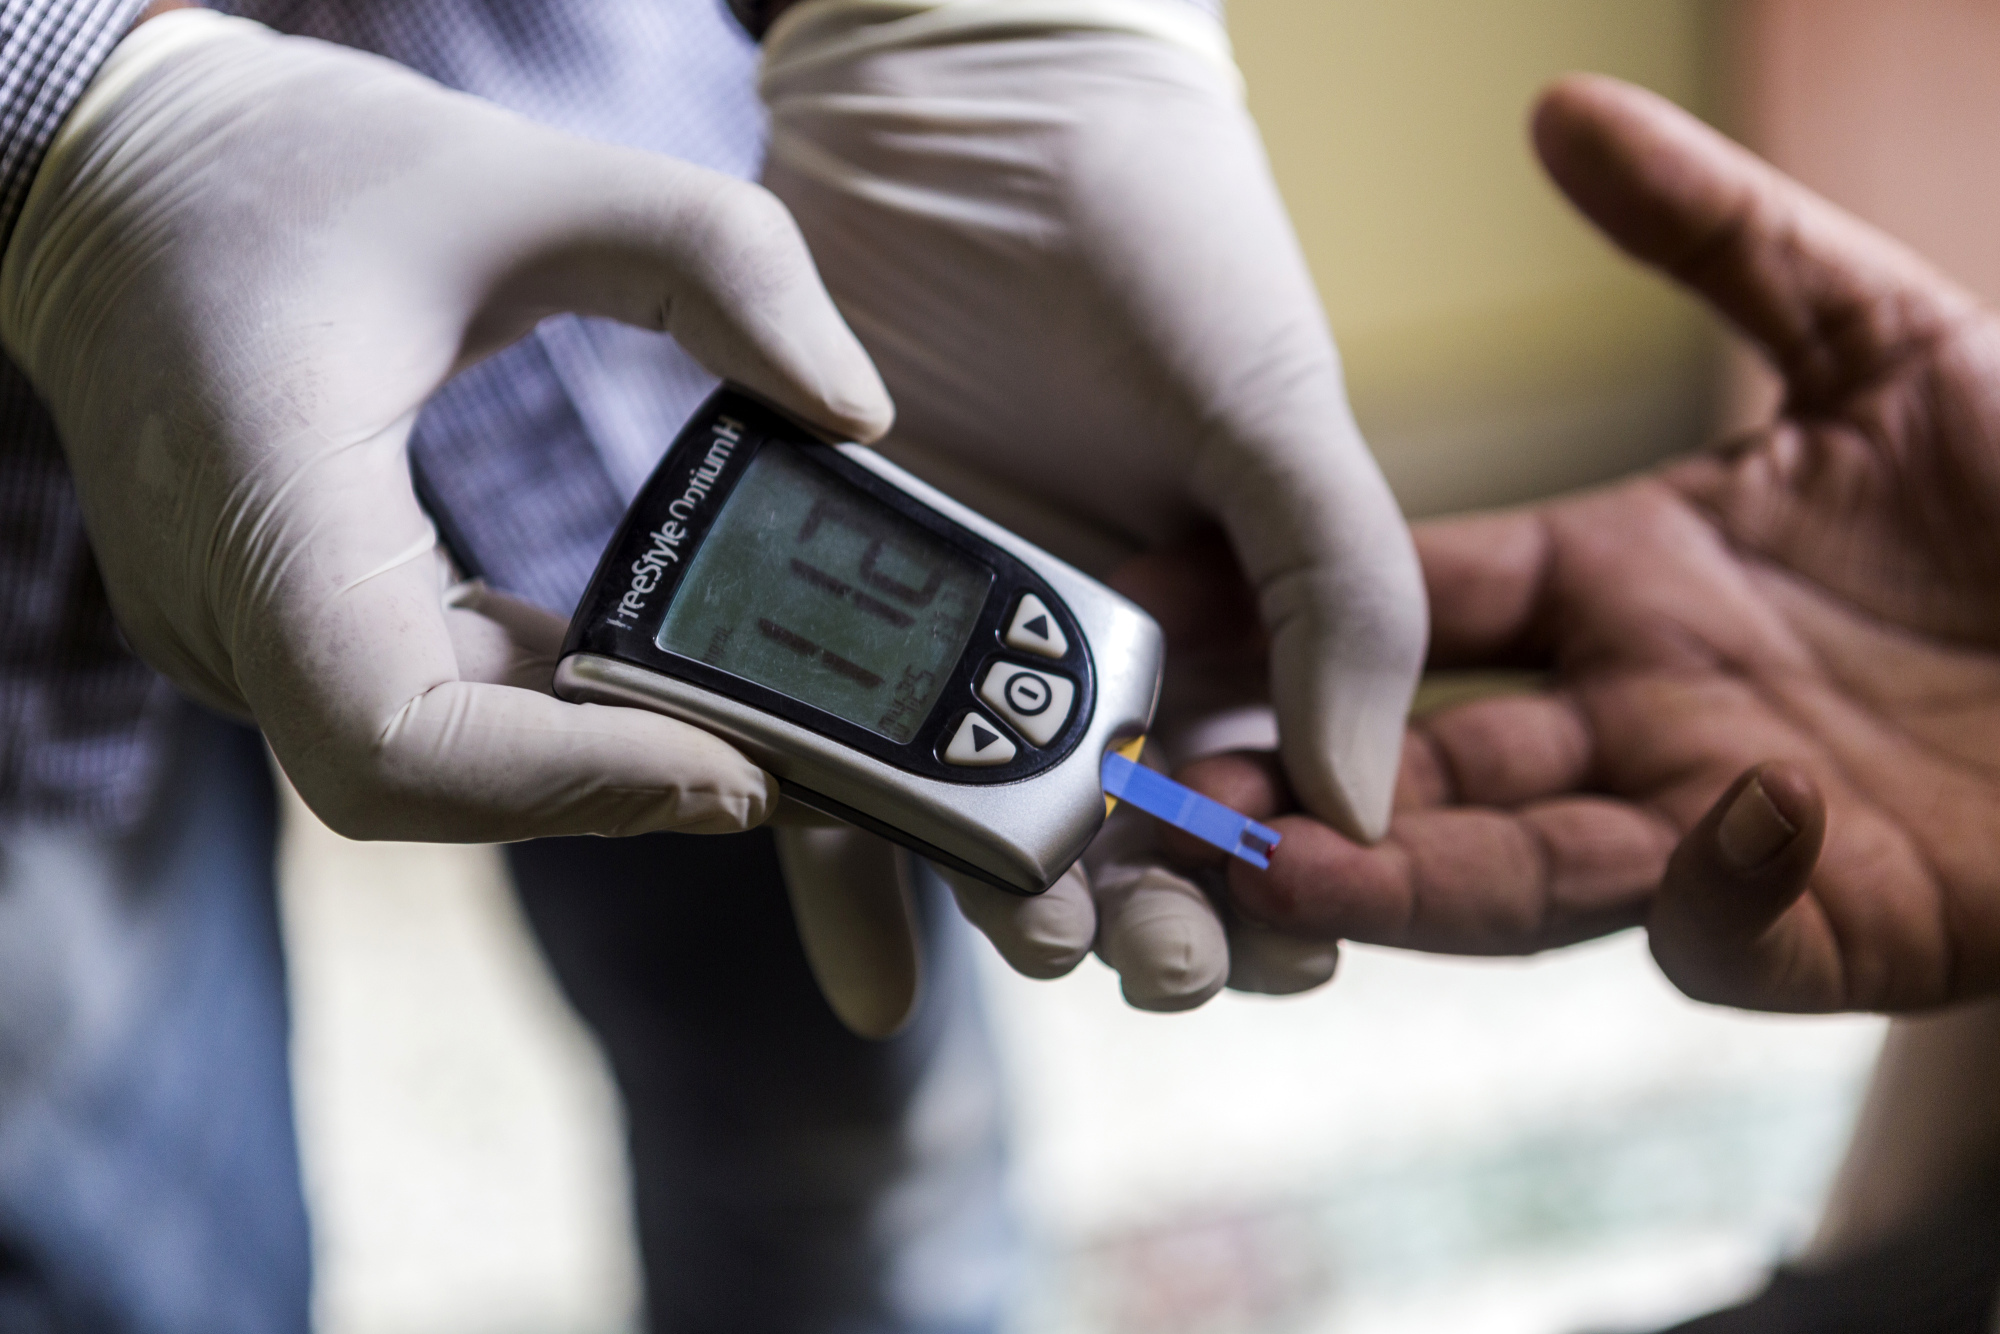 Sensors to Smartphones Bring Patent Wars to Diabetes